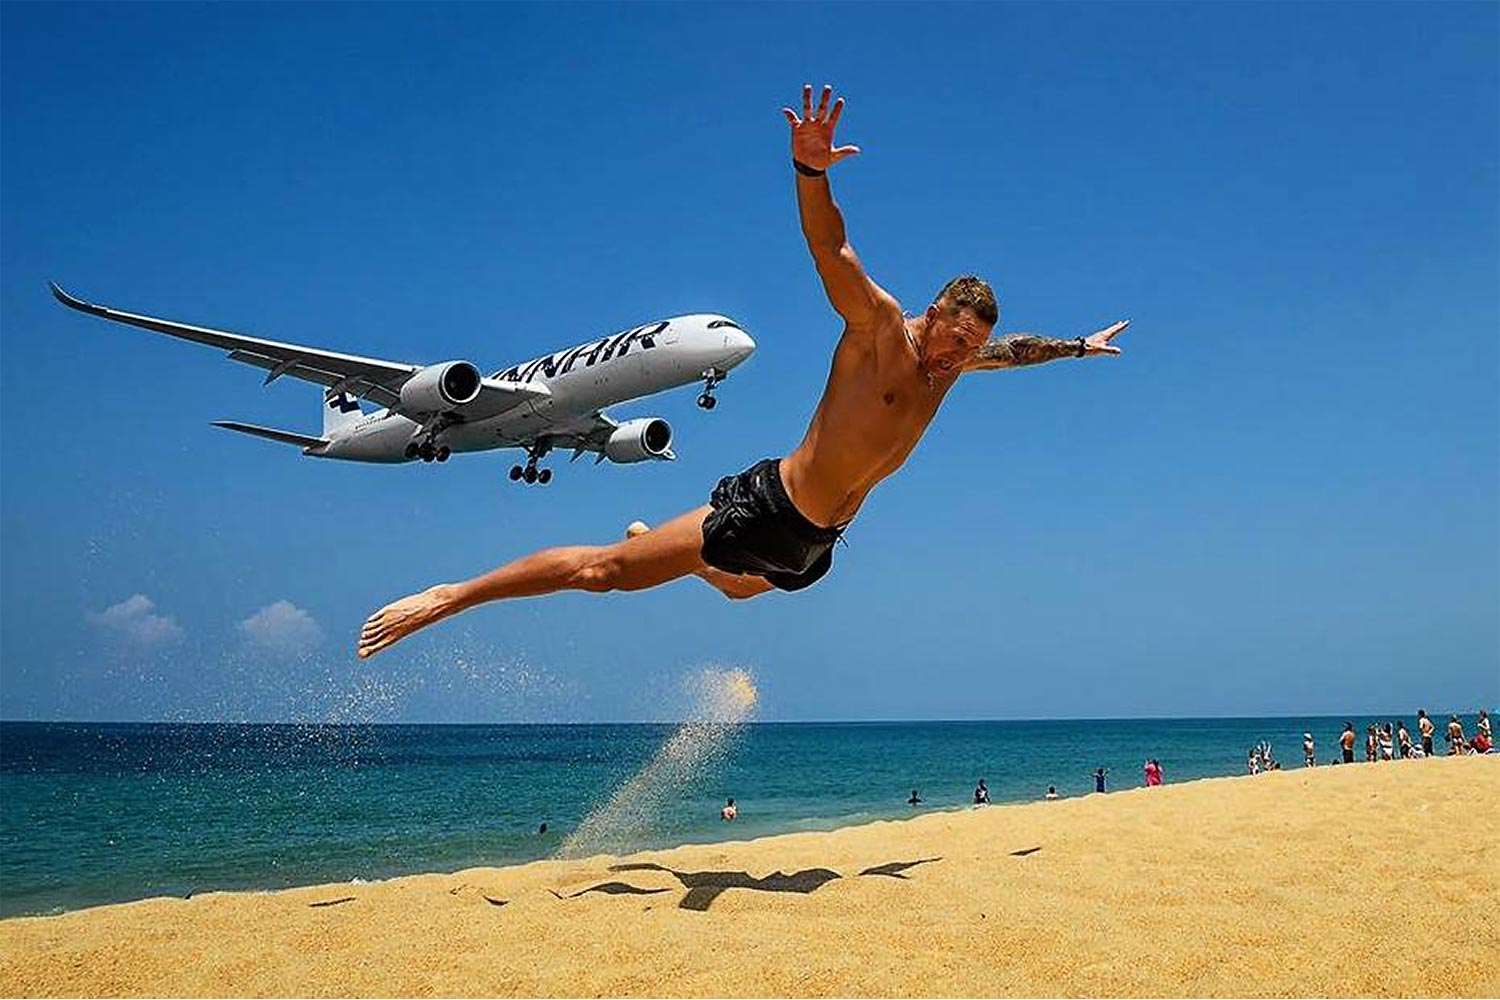 Mai Khao beach in Phuket. The Tourism and Sports minister aims to make the Andaman province a model for the Safe and Sealed tourism plan. (Photo: Phuket plane spotter)